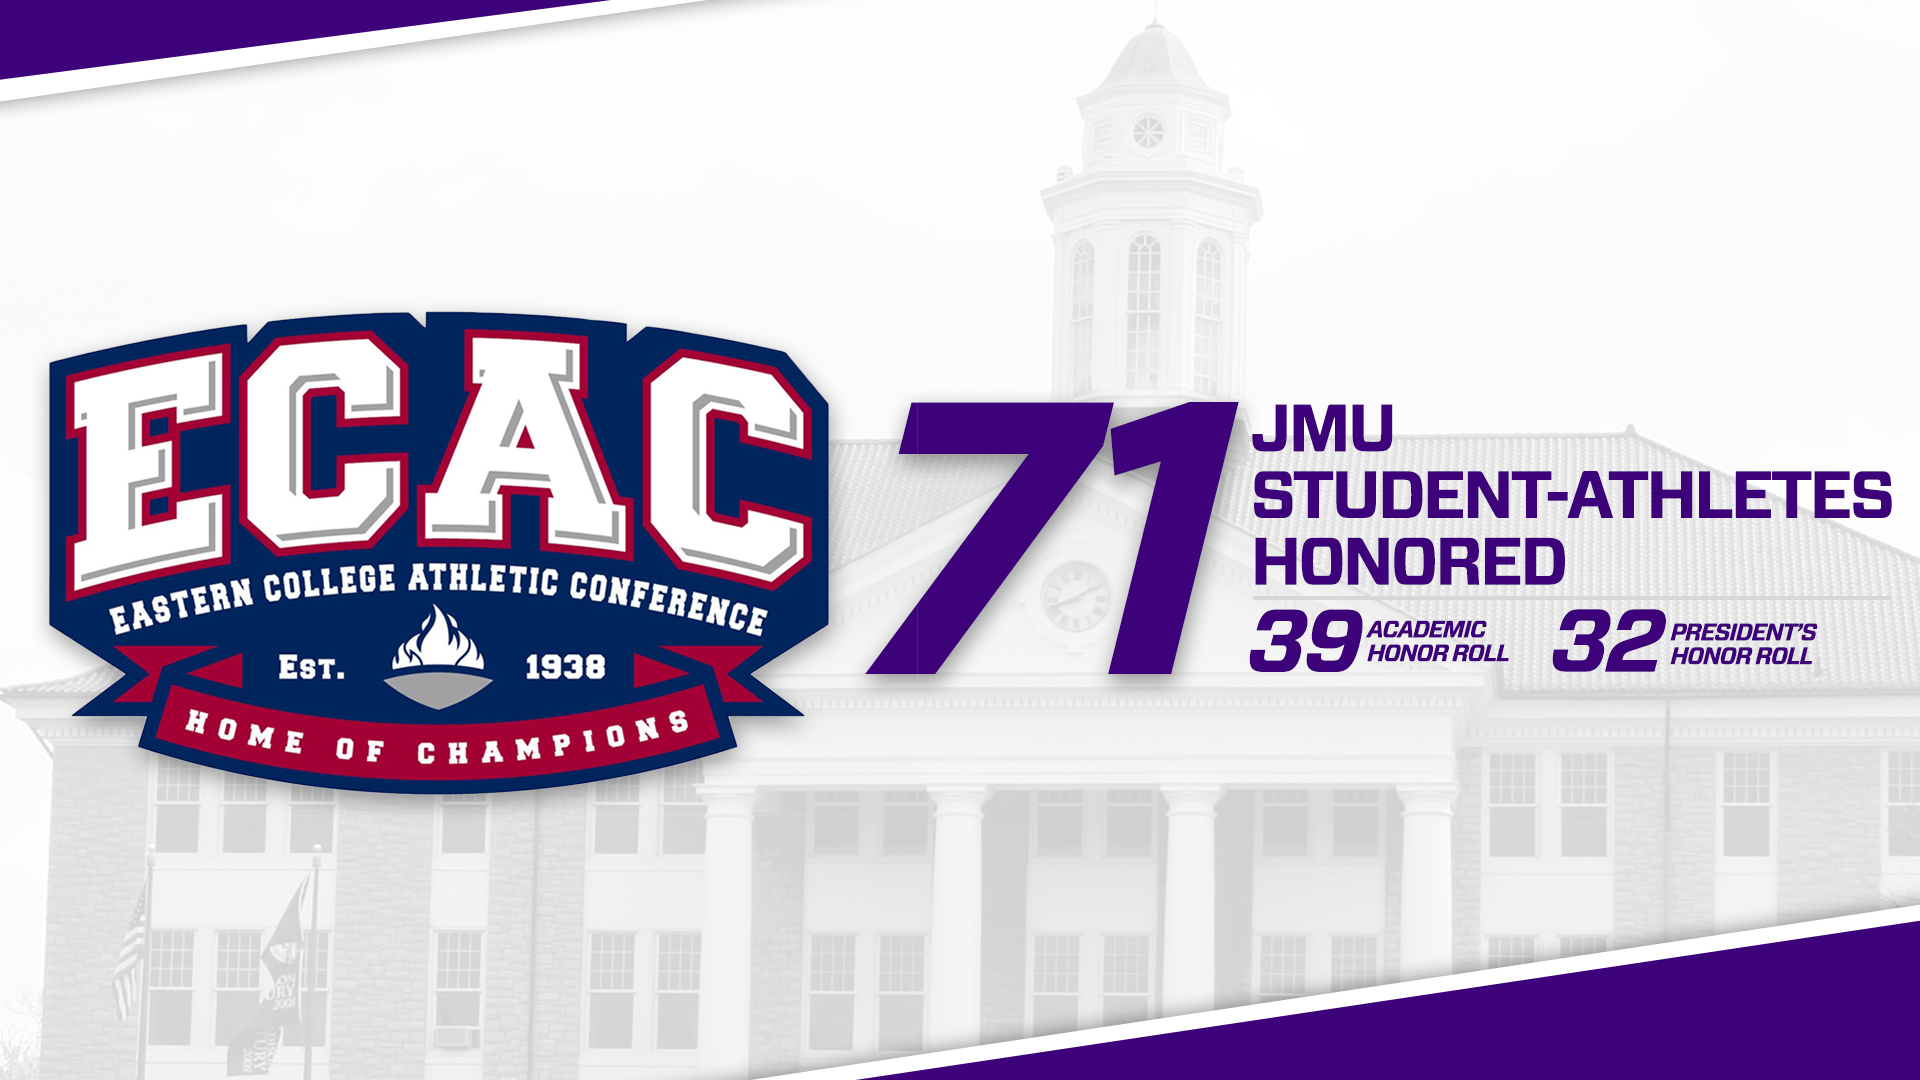 Baseball, Men's Basketball, Softball, Women's Basketball, Women's Lacrosse, Women's Swimming and Diving, Track & Field, Student-Athlete Services: 71 Student-Athletes Received ECAC Spring Academic Accolades